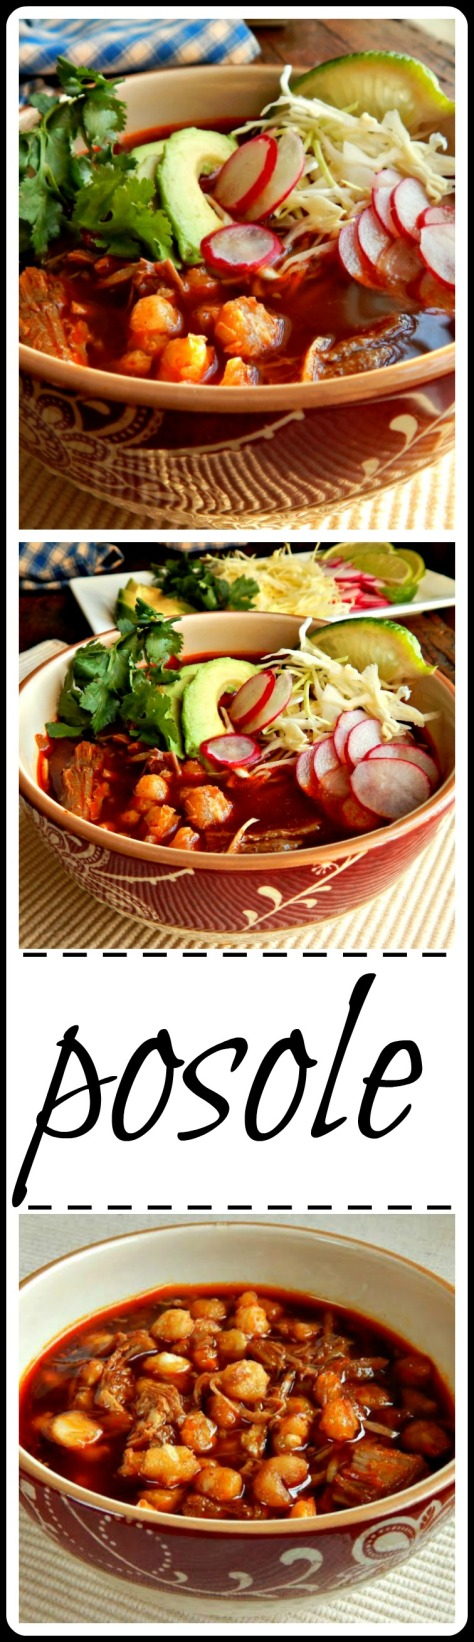 Posole or Pozole A favorite down home stew of pork and hominy, Easy to make from scratch or from pulled pork leftovers, stove-top or slow cooker.